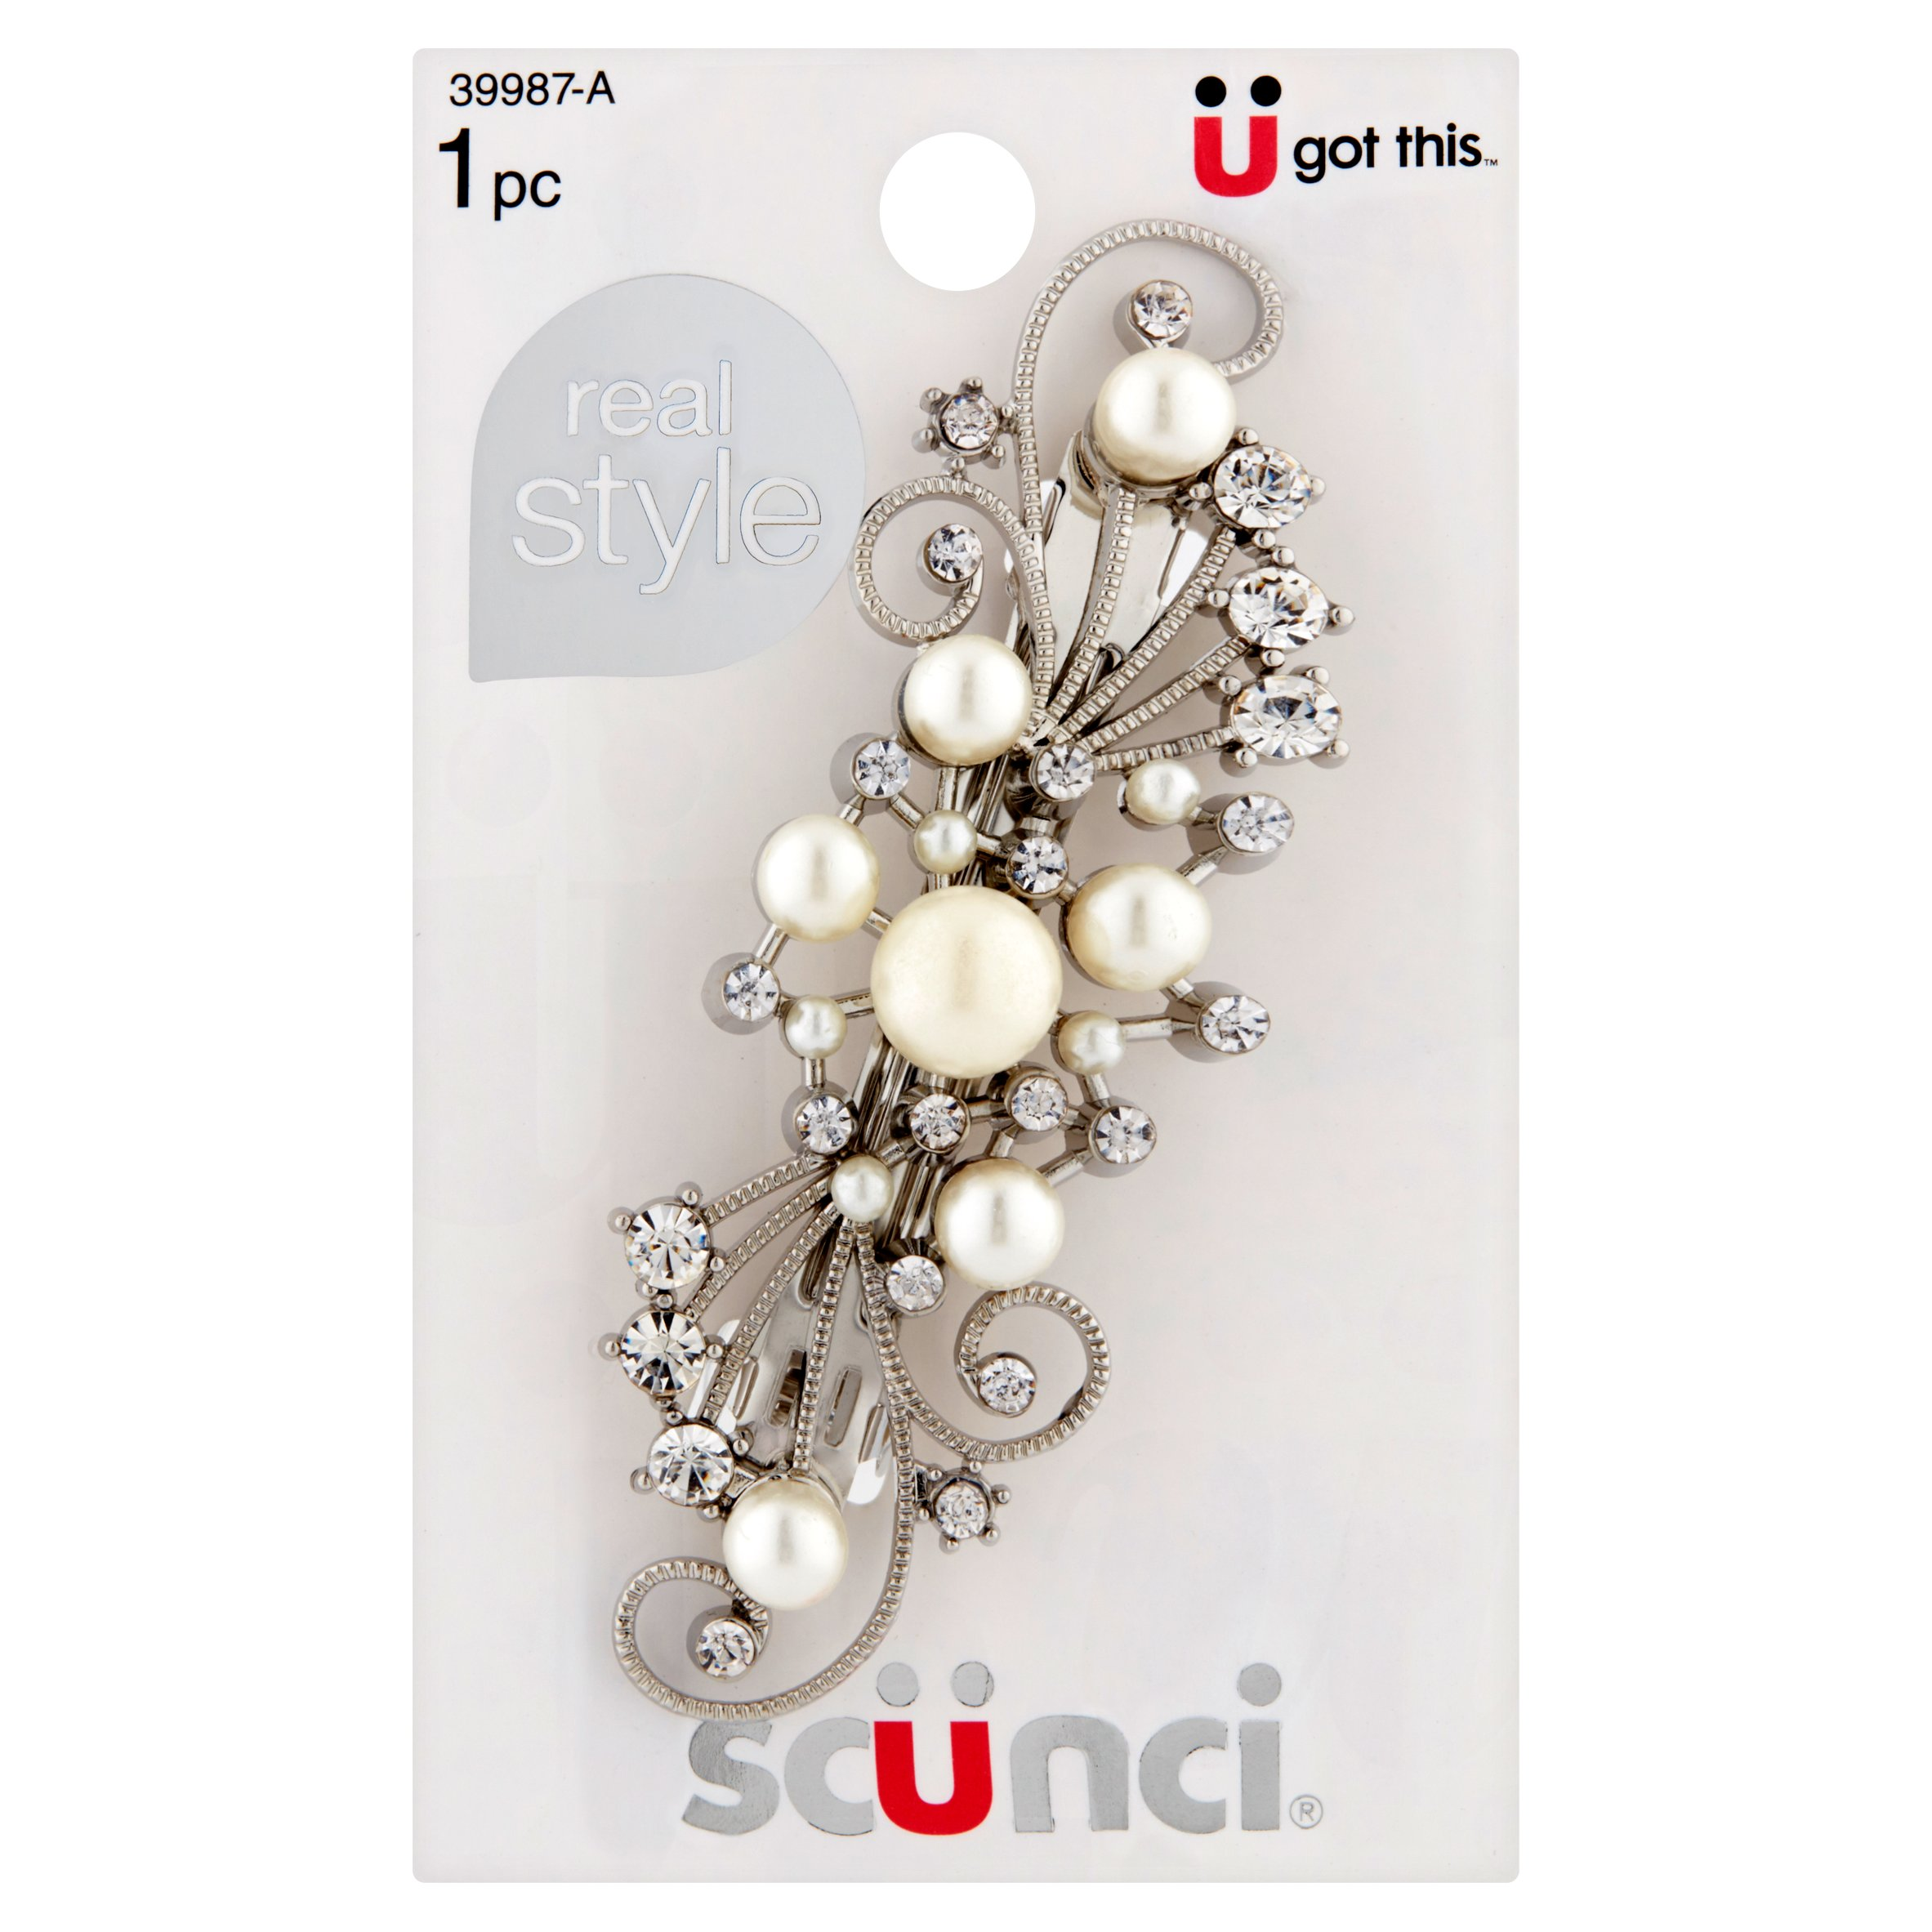 Scünci Ü got this Real Style Barrette